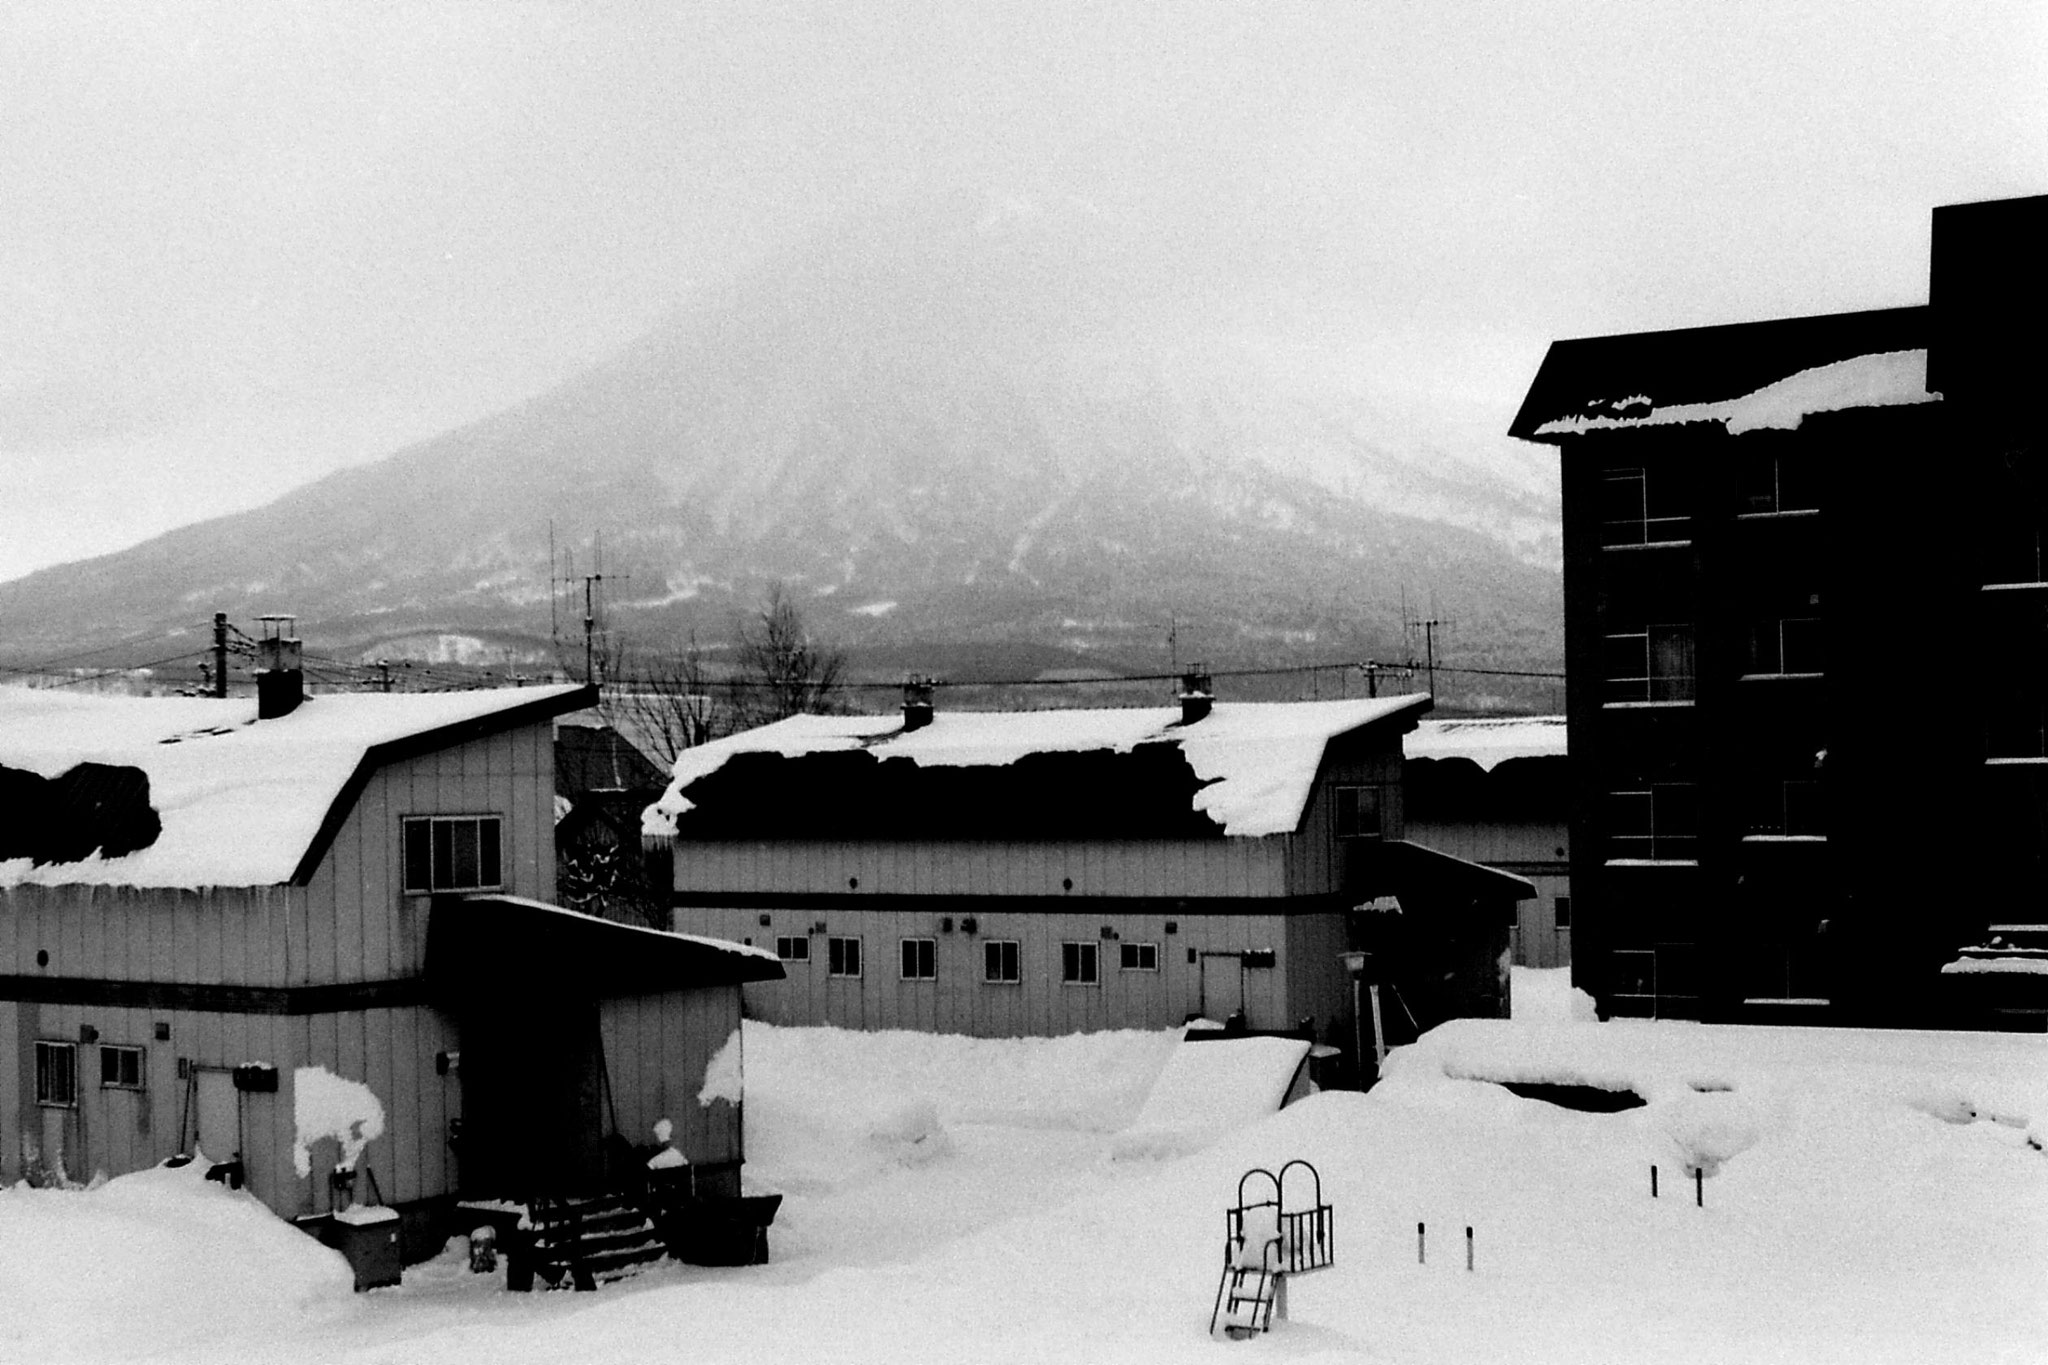 15/1/1989: 32: Mt Yotei from Kutchan station